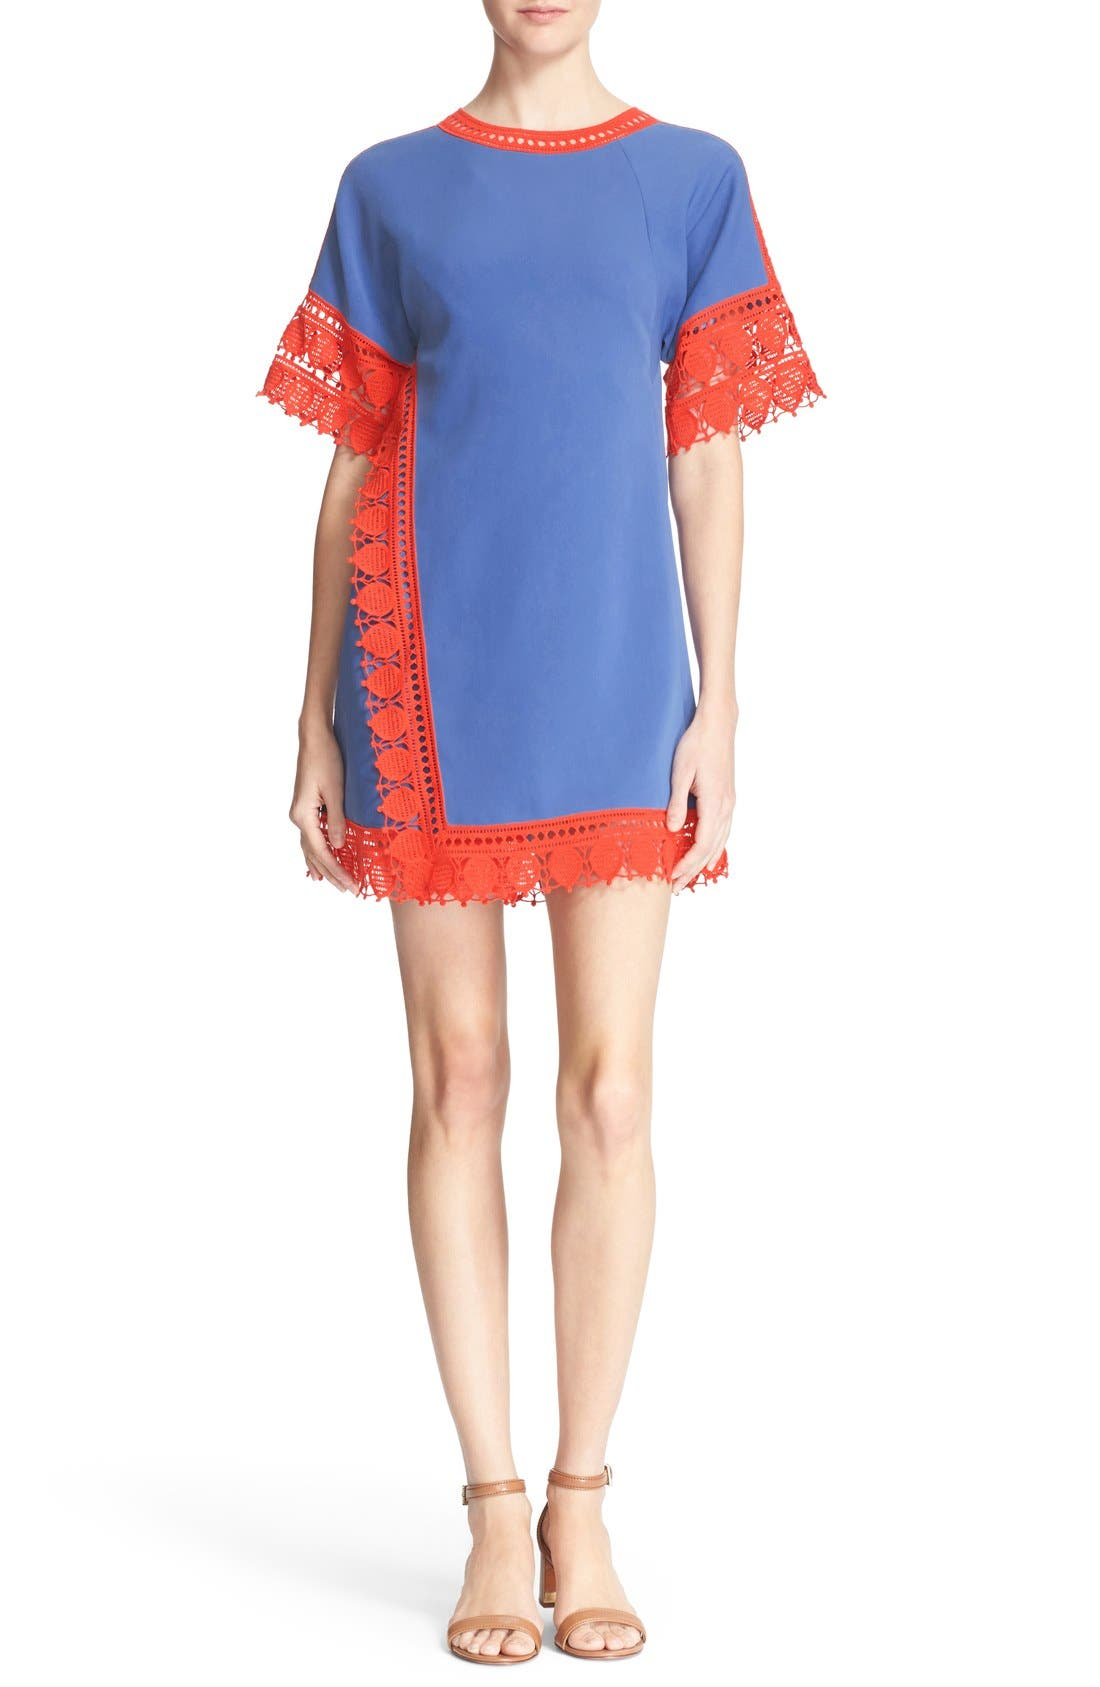 Alternate Image 1 Selected - Tory Burch 'Marissa' Lace Trim Dress